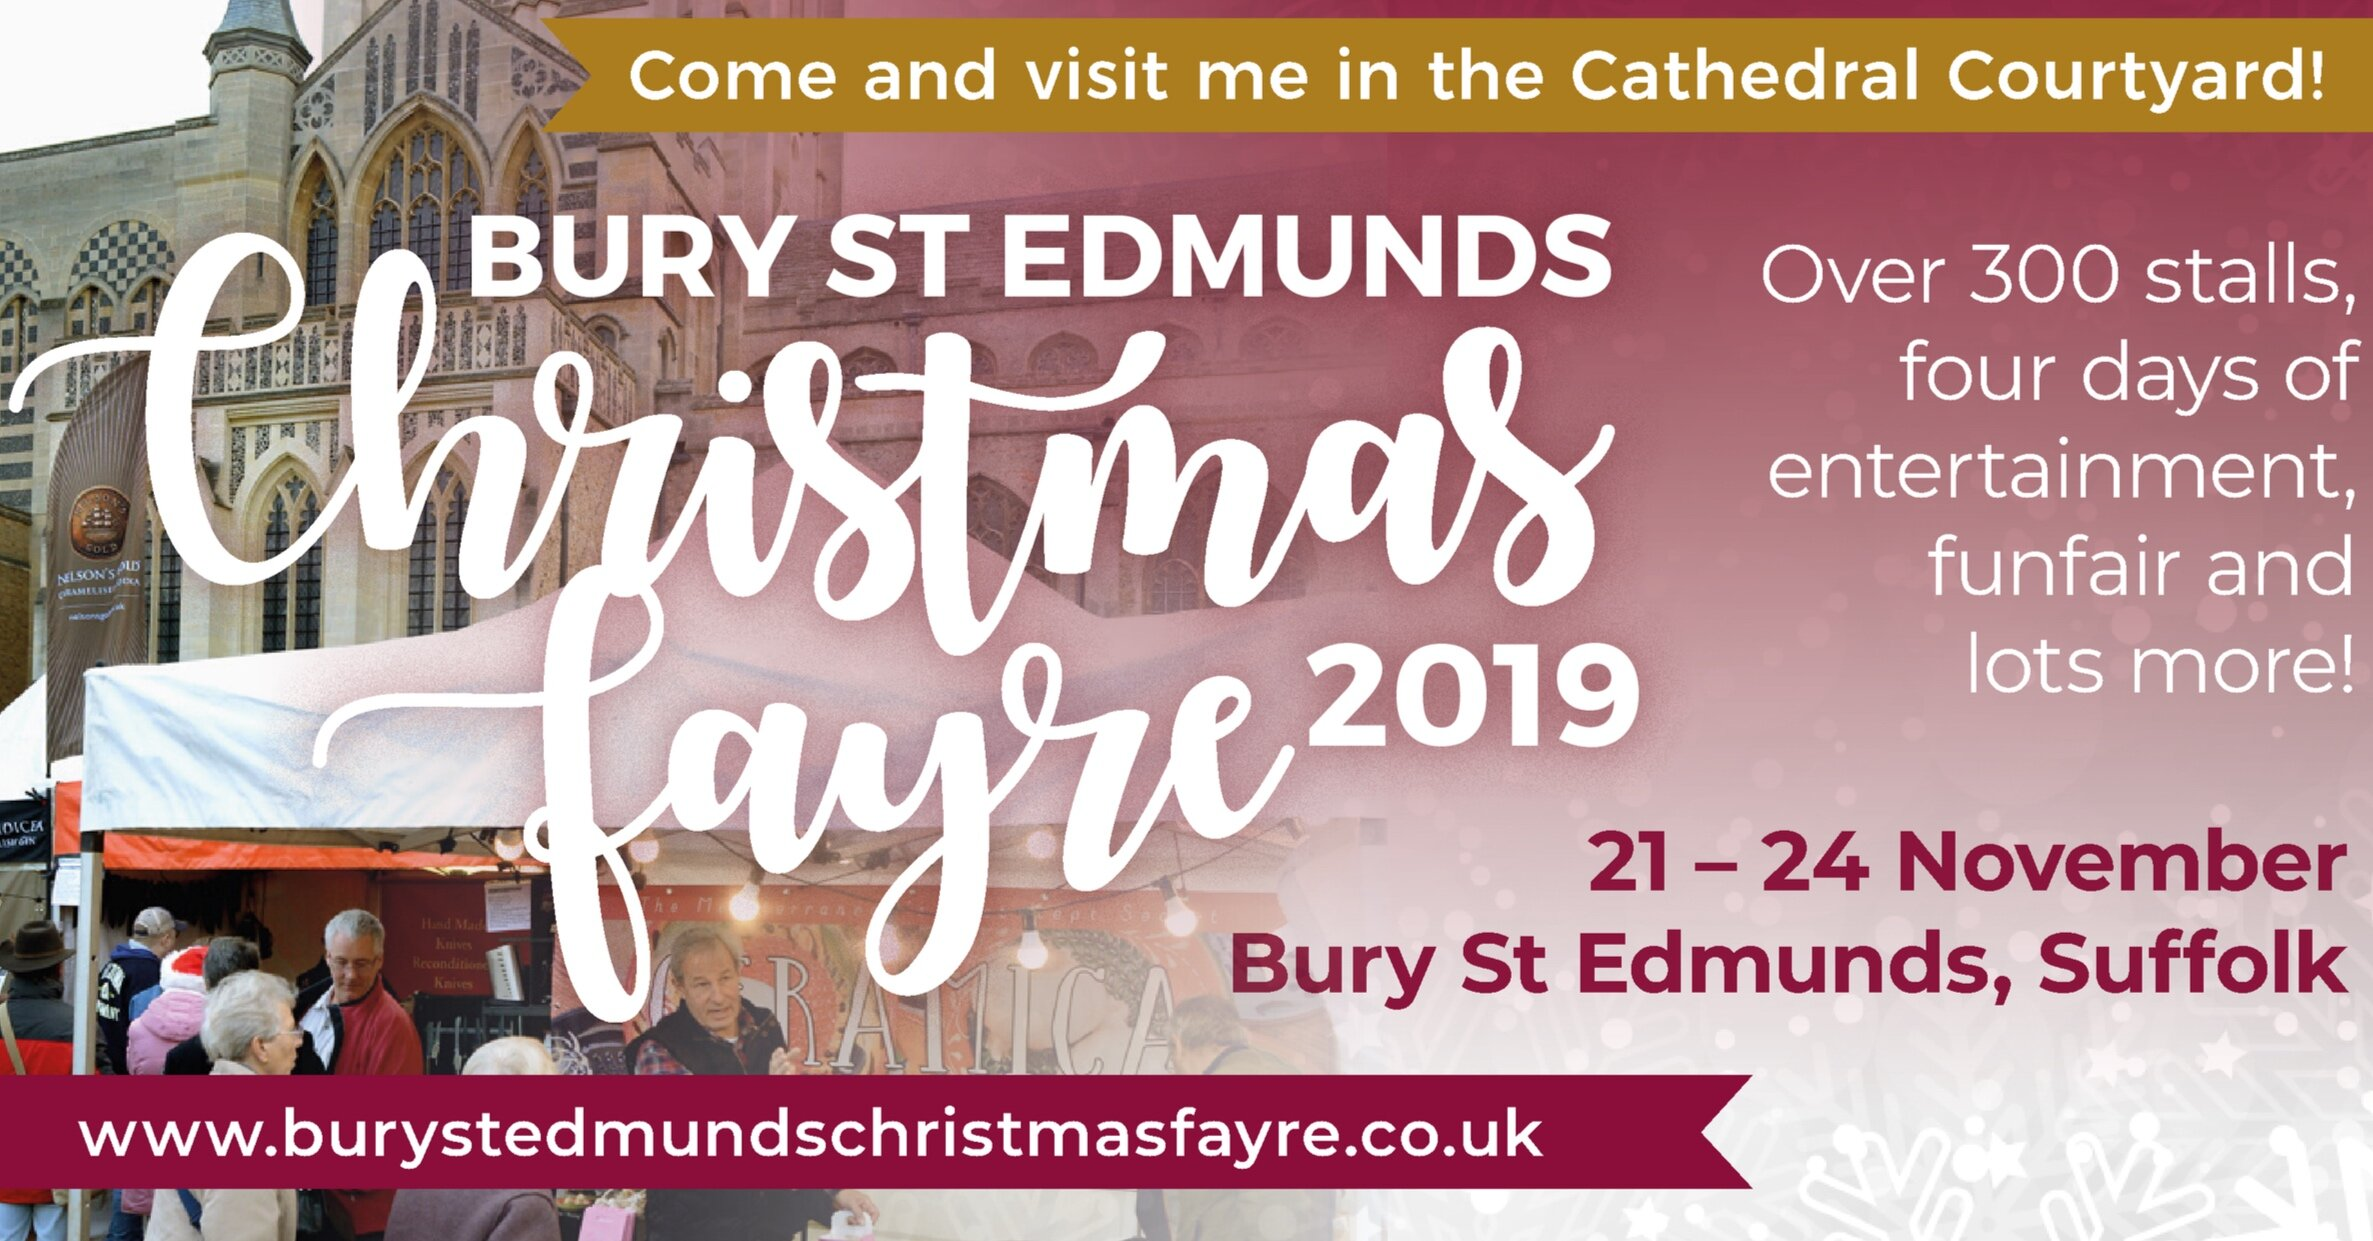 Christmas+Fayre+-+Social+media+advert+-+Cathedral+Courtyard.jpg